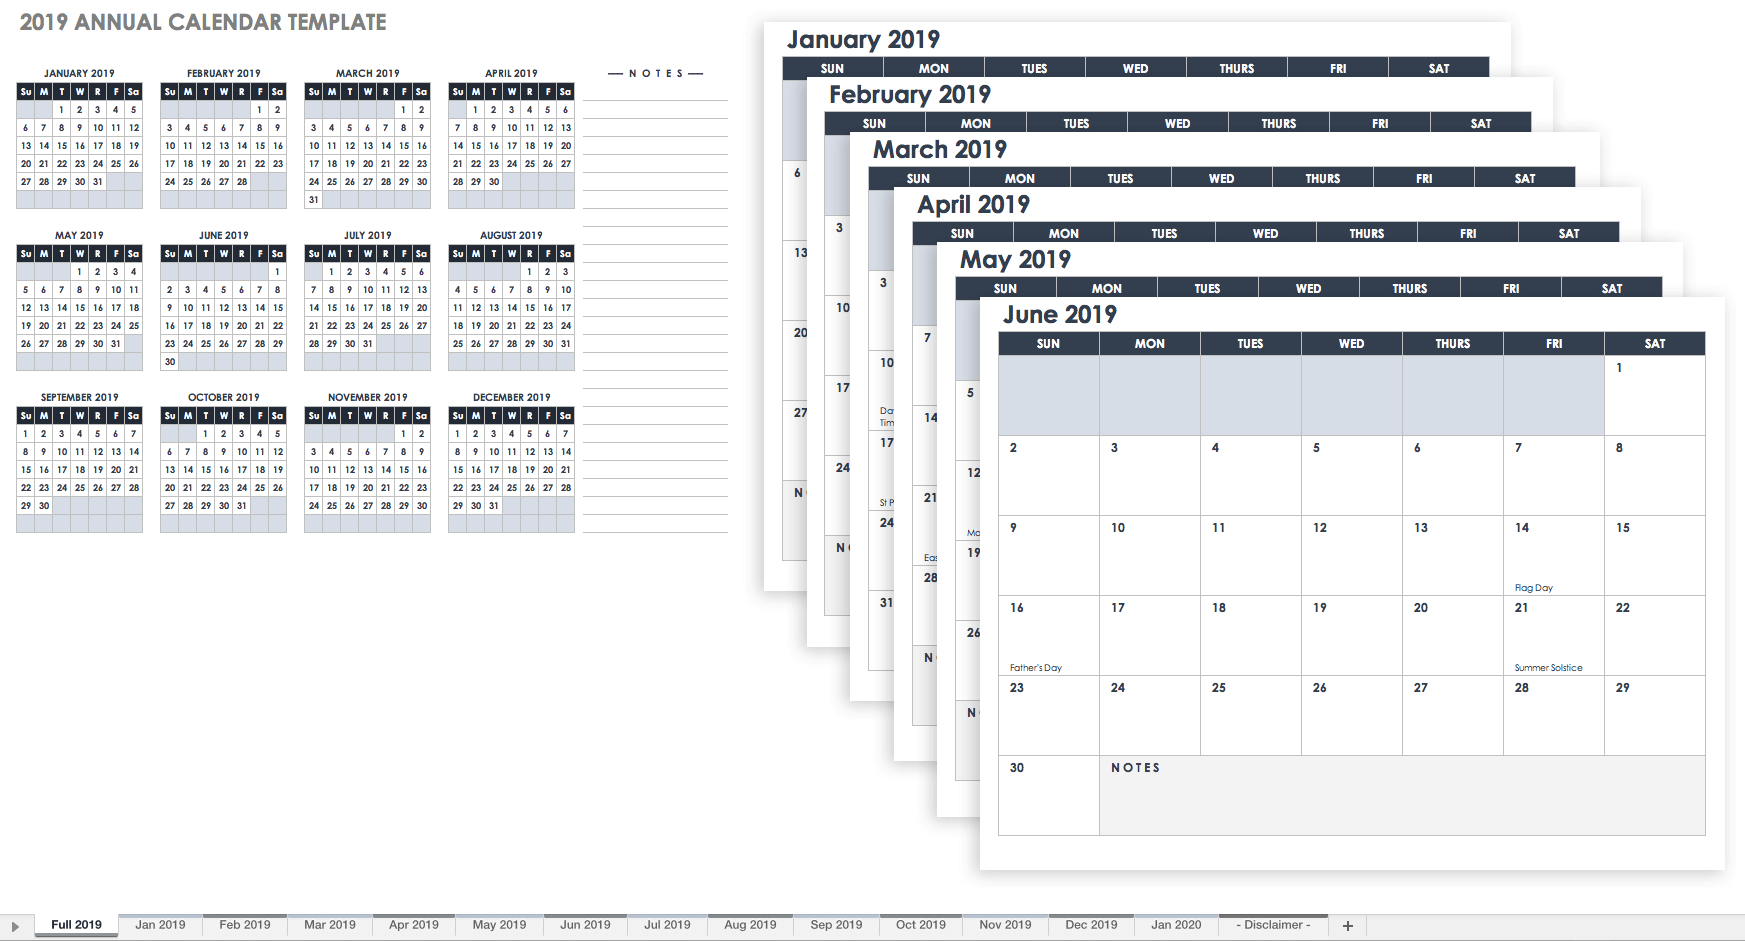 15 Free Monthly Calendar Templates | Smartsheet regarding Year At A Glance Printable Calendar 2019/2020